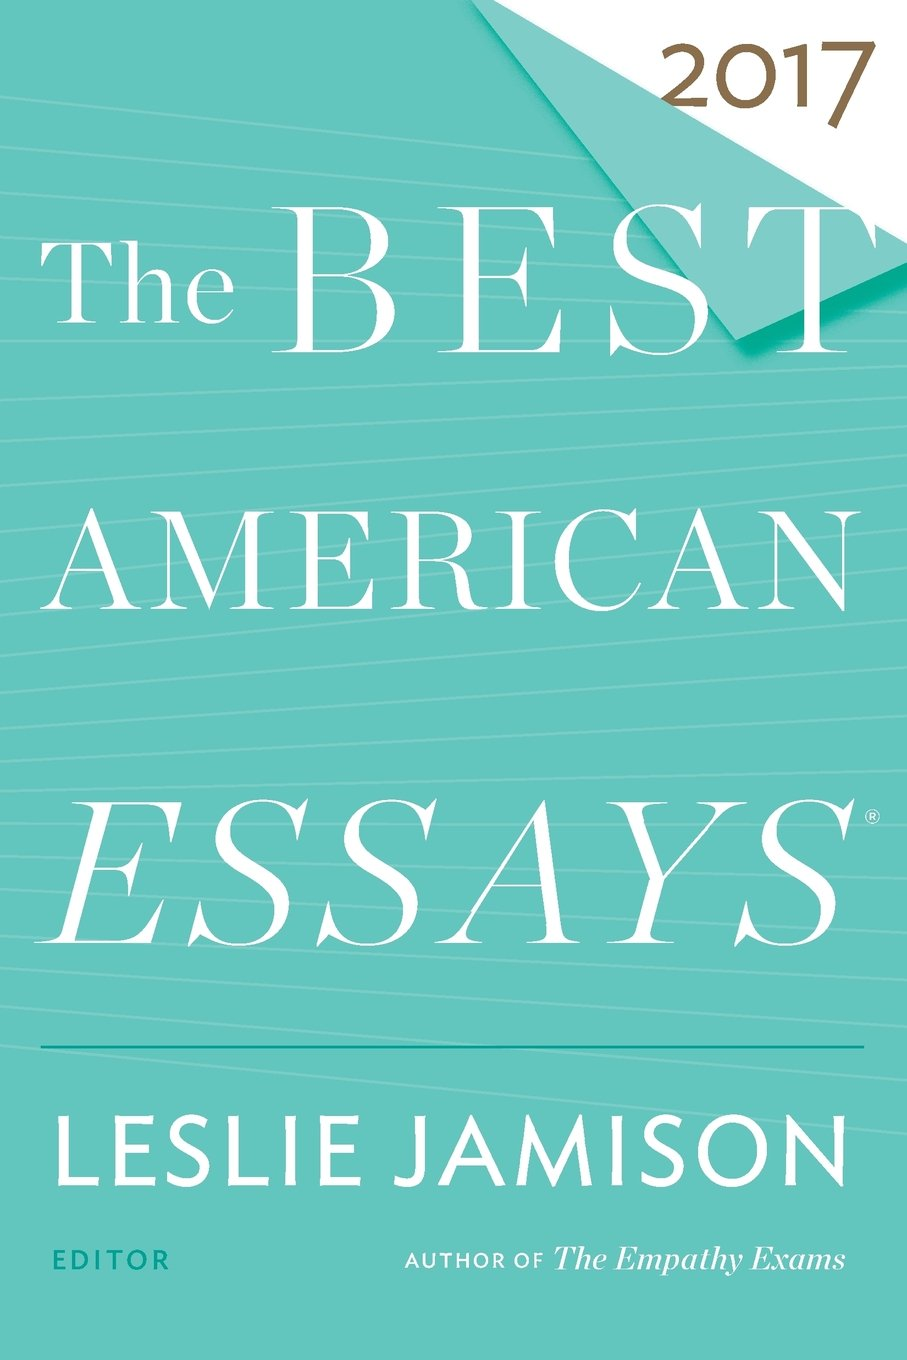 001 Best American Essays 61tzl Nruvl Essay Astounding 2017 Submissions Pdf Free Download Full